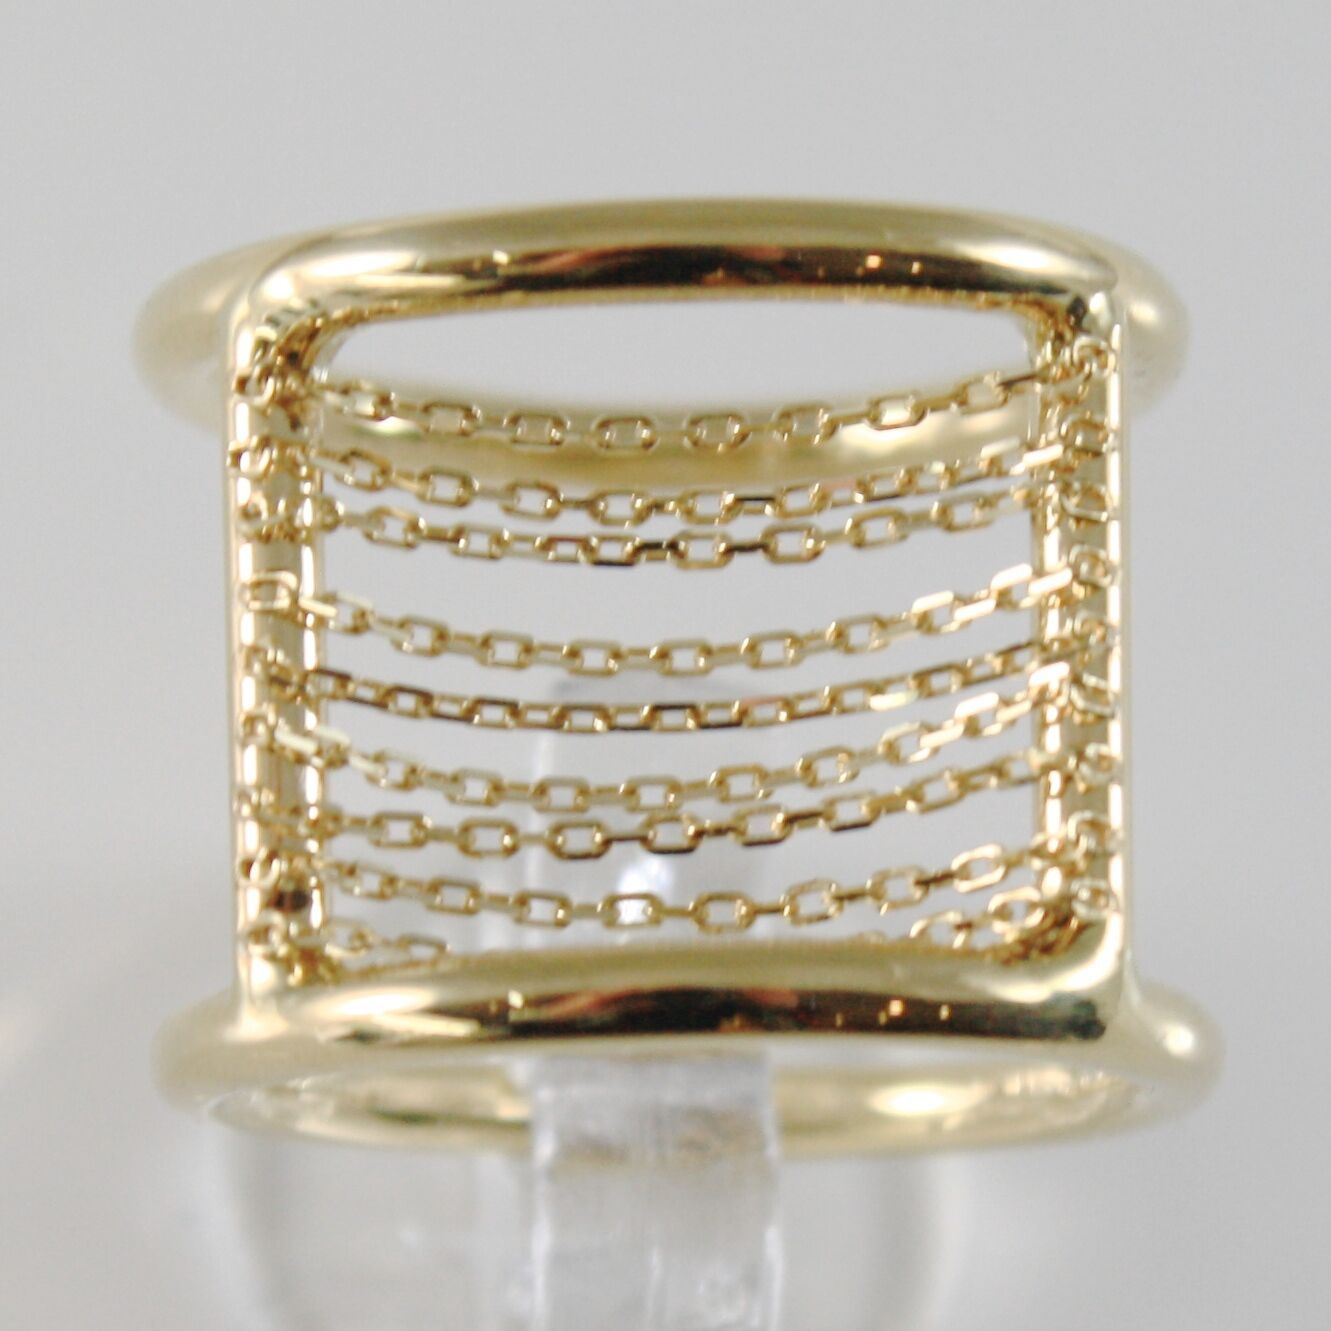 18K YELLOW GOLD BAND RING WITH MULTI WIRES DIAMOND CUT CHAINS, MADE IN ITALY